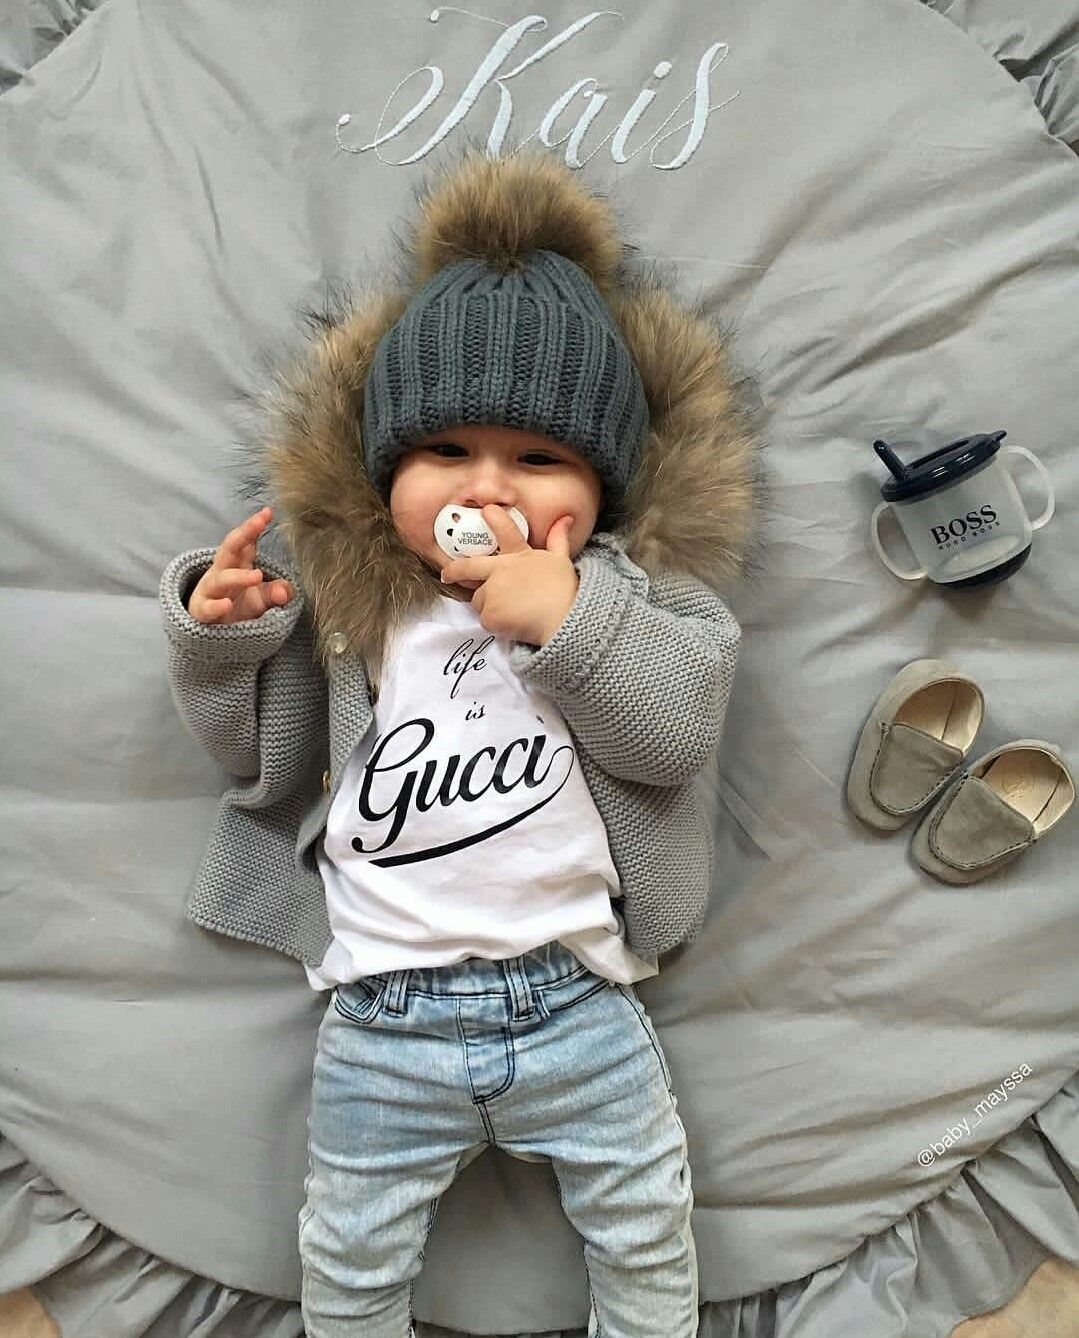 639780c96bd7f Gucci baby | Baby & Infant wear | Baby boy swag, Gucci baby, Toddler ...